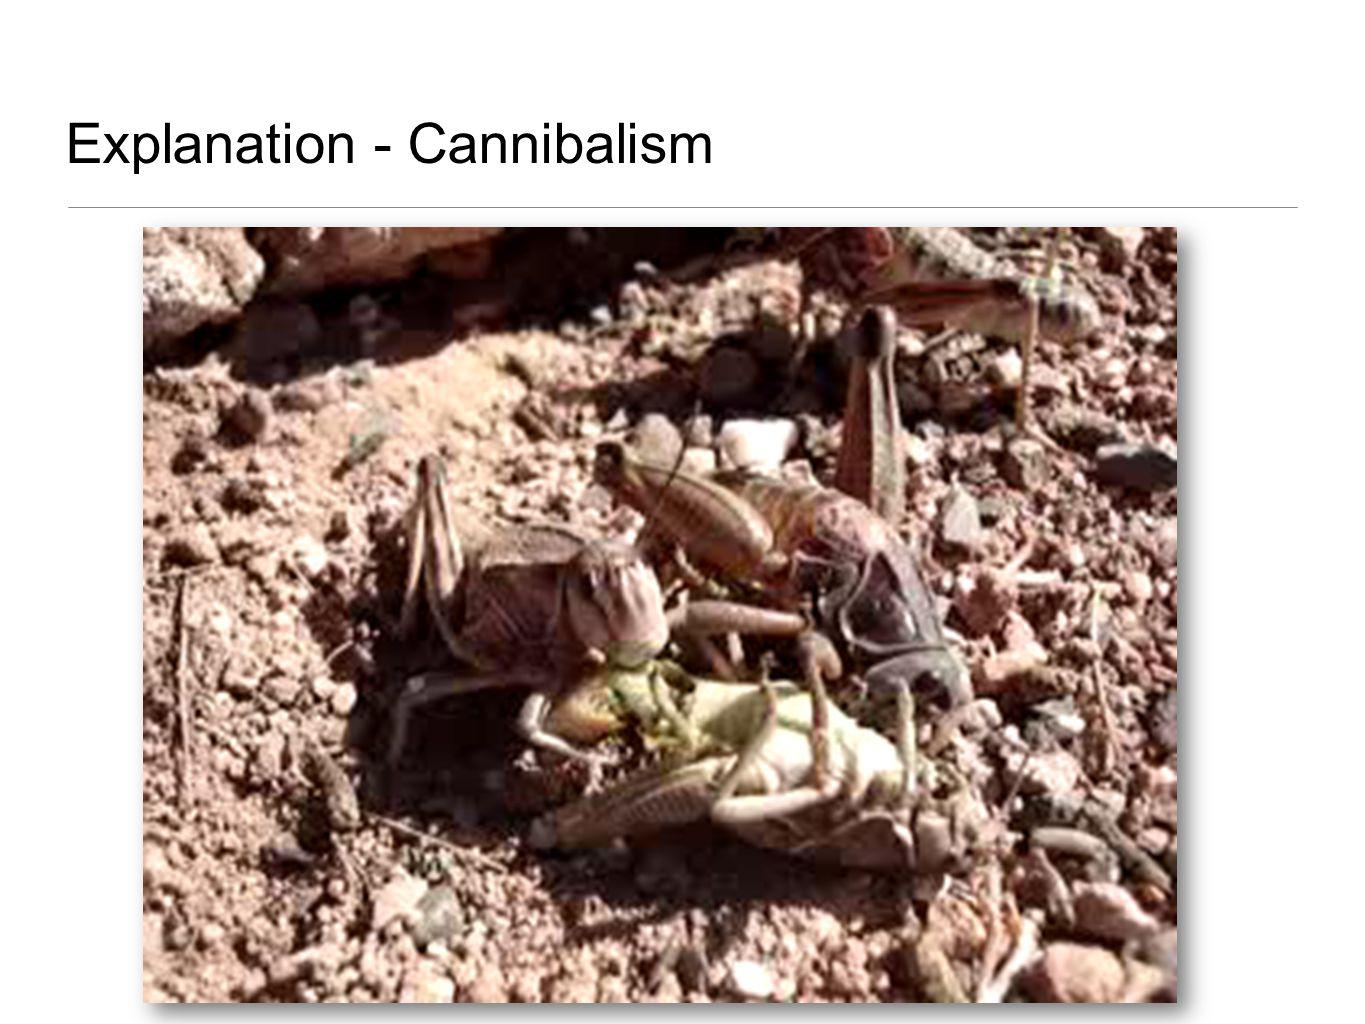 Explanation - Cannibalism